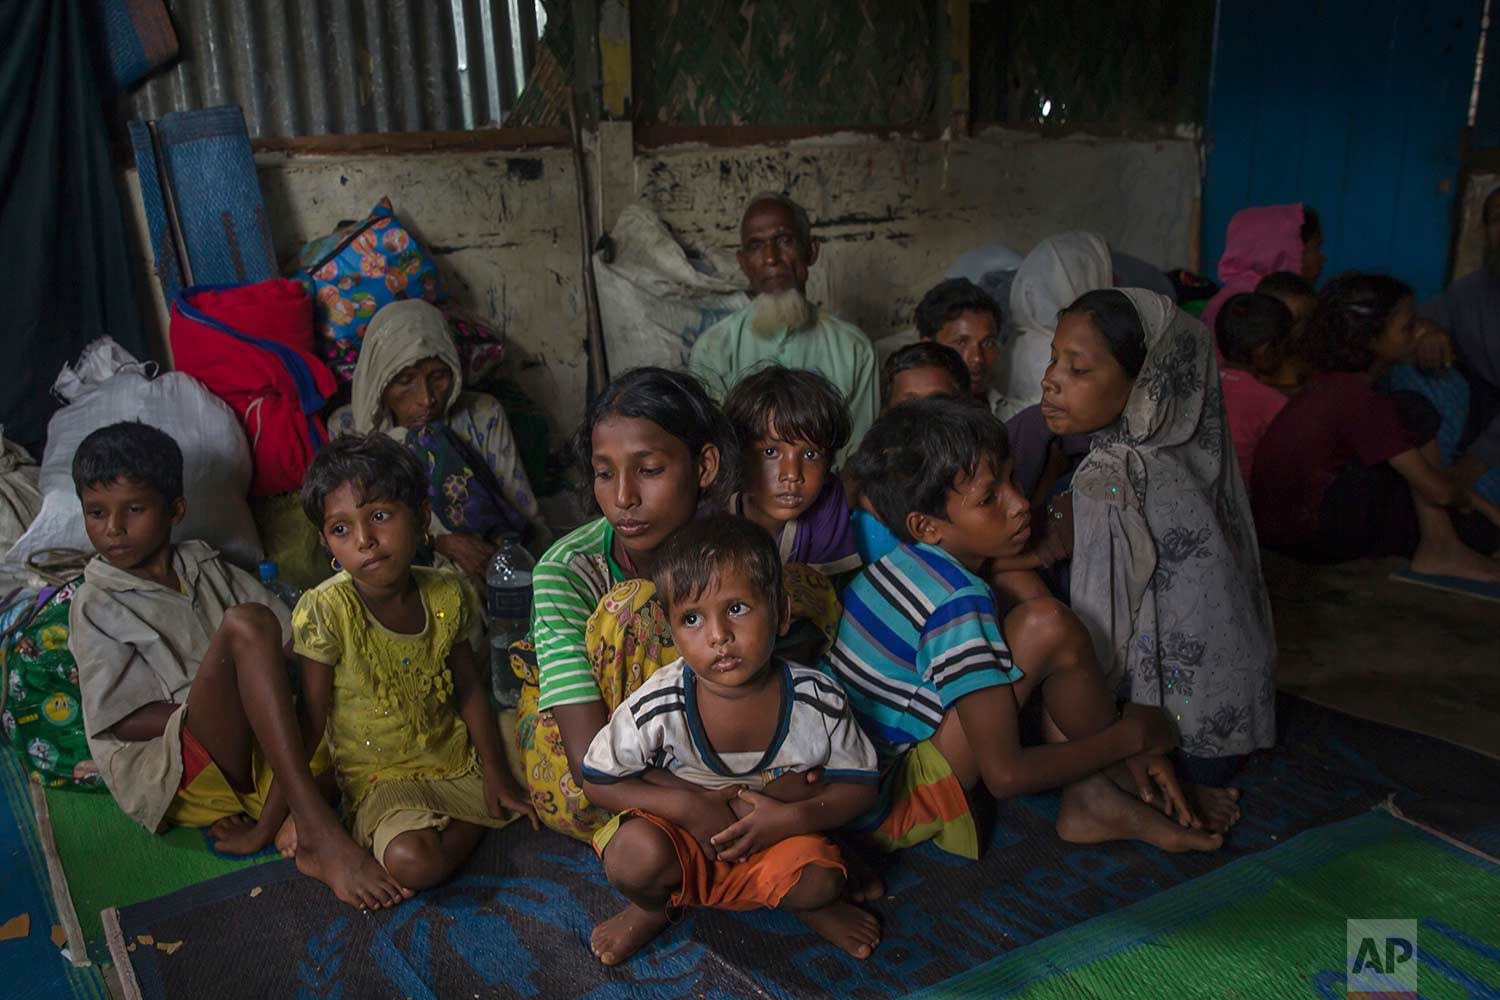 Rohingya Muslims sit inside a classroom waiting to be registered after which they will be allowed to proceed to build a shelter in Kutupalong refugee camp, Bangladesh, Friday, Oct. 20, 2017. (AP Photo/Dar Yasin)